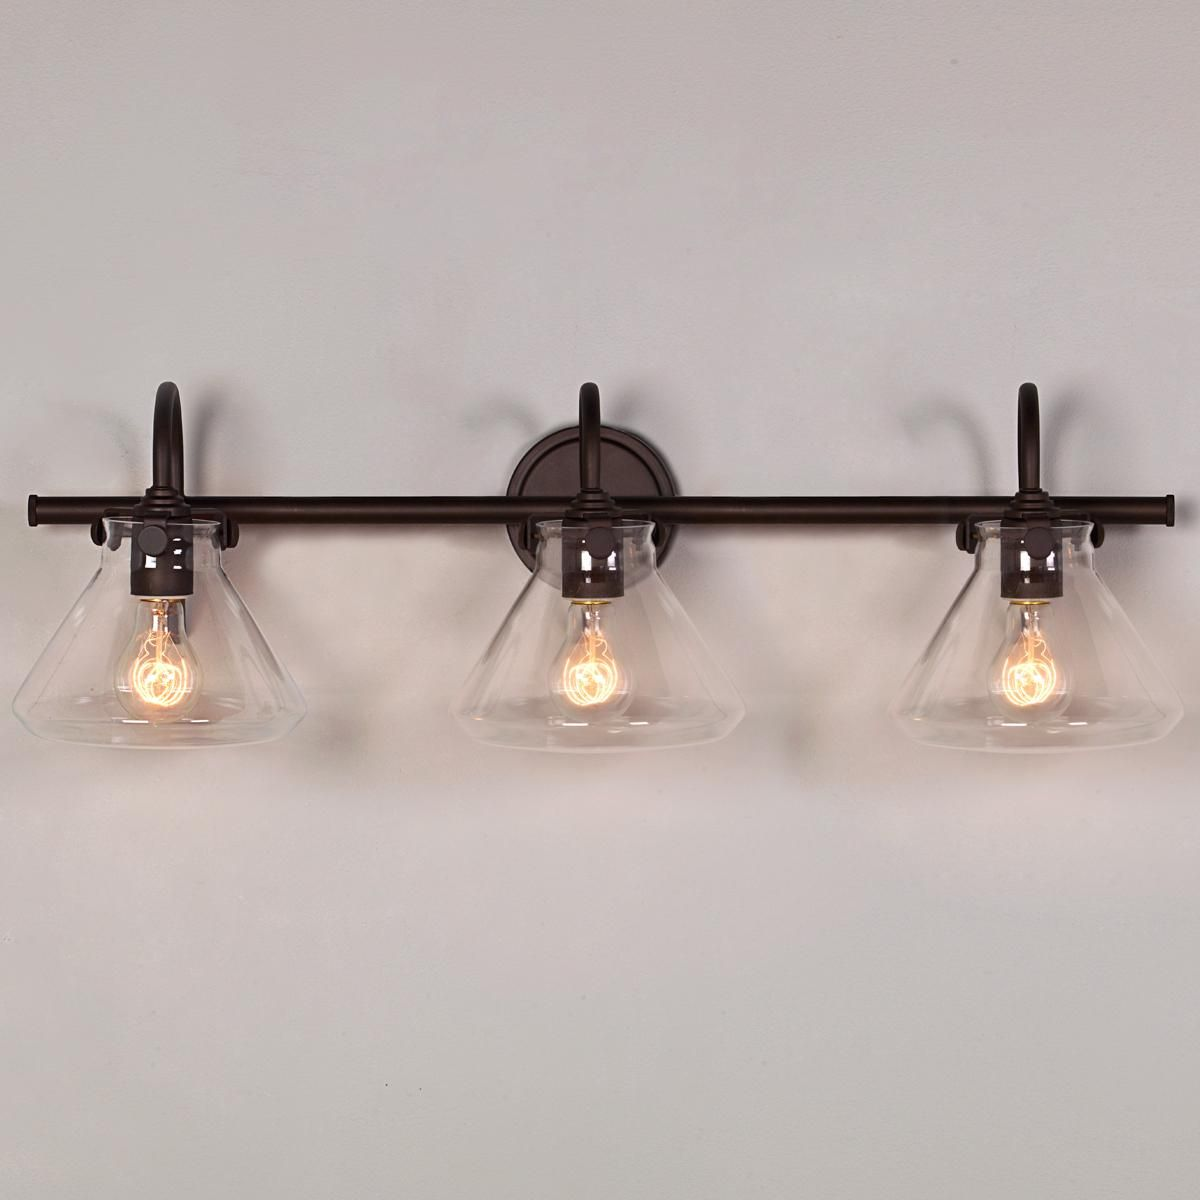 Beaker Gl Bath Light 3 It S Clear To See That This Or Vanity Is A Modern Inspiration Of Vintage Sconce Available In 2